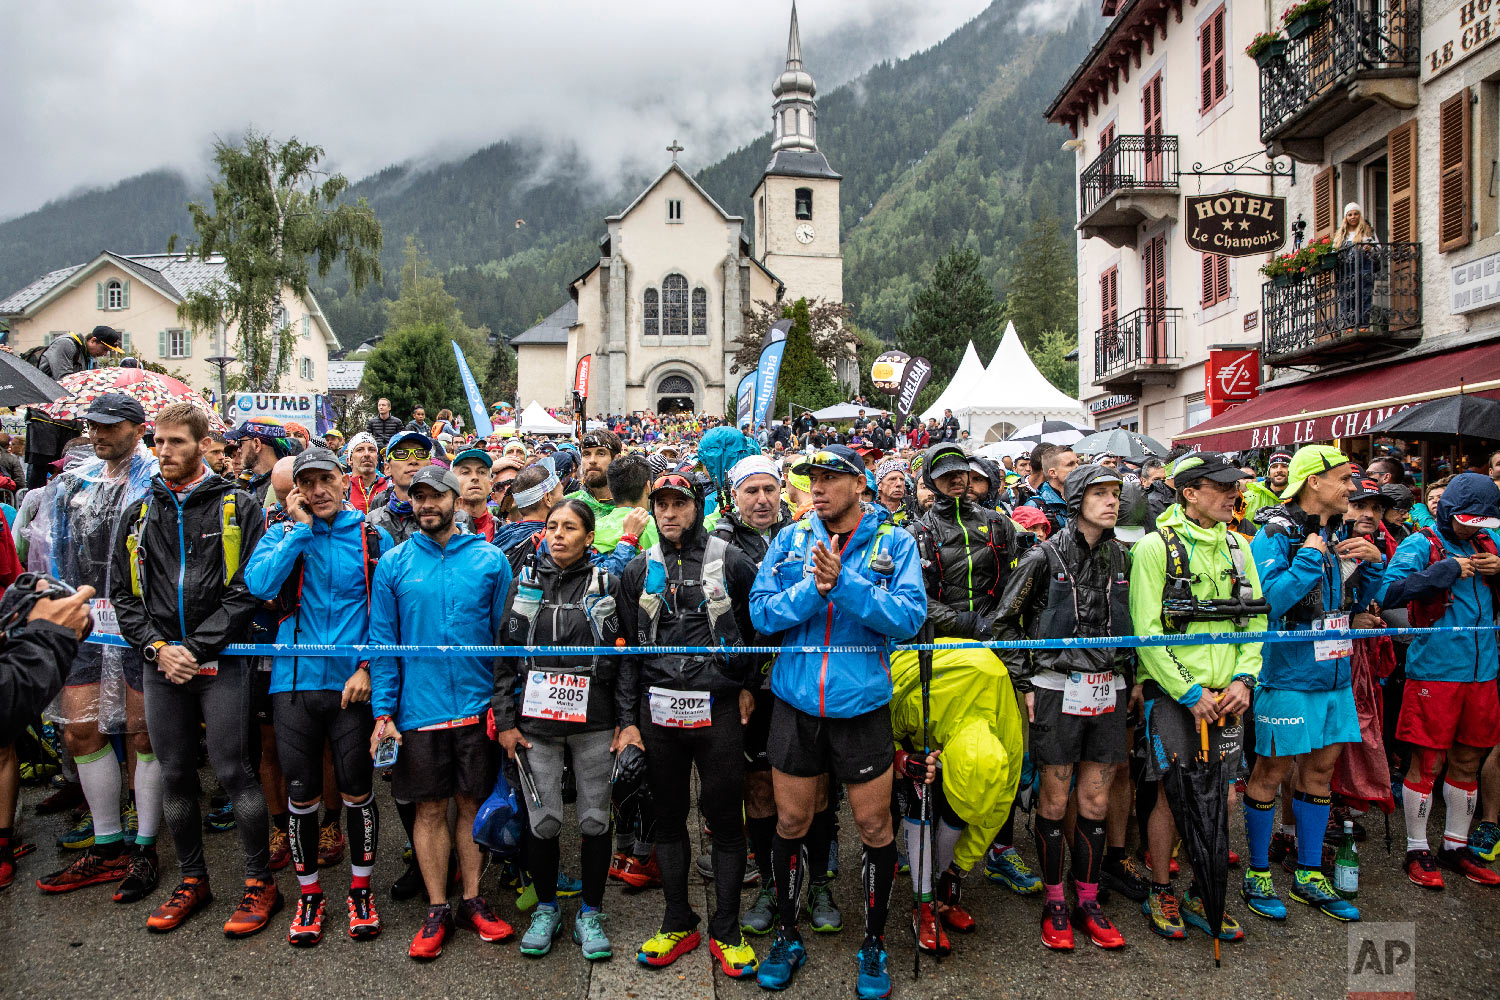 Competitors wait in the rain for the start of the 170km Ultra-Trail of Mont-Blanc (UTMB) race around the Mont-Blanc, crossing France, Italy and Switzerland, in Chamonix, French Alps, Aug. 31, 2018. (AP Photo/Laurent Cipriani)